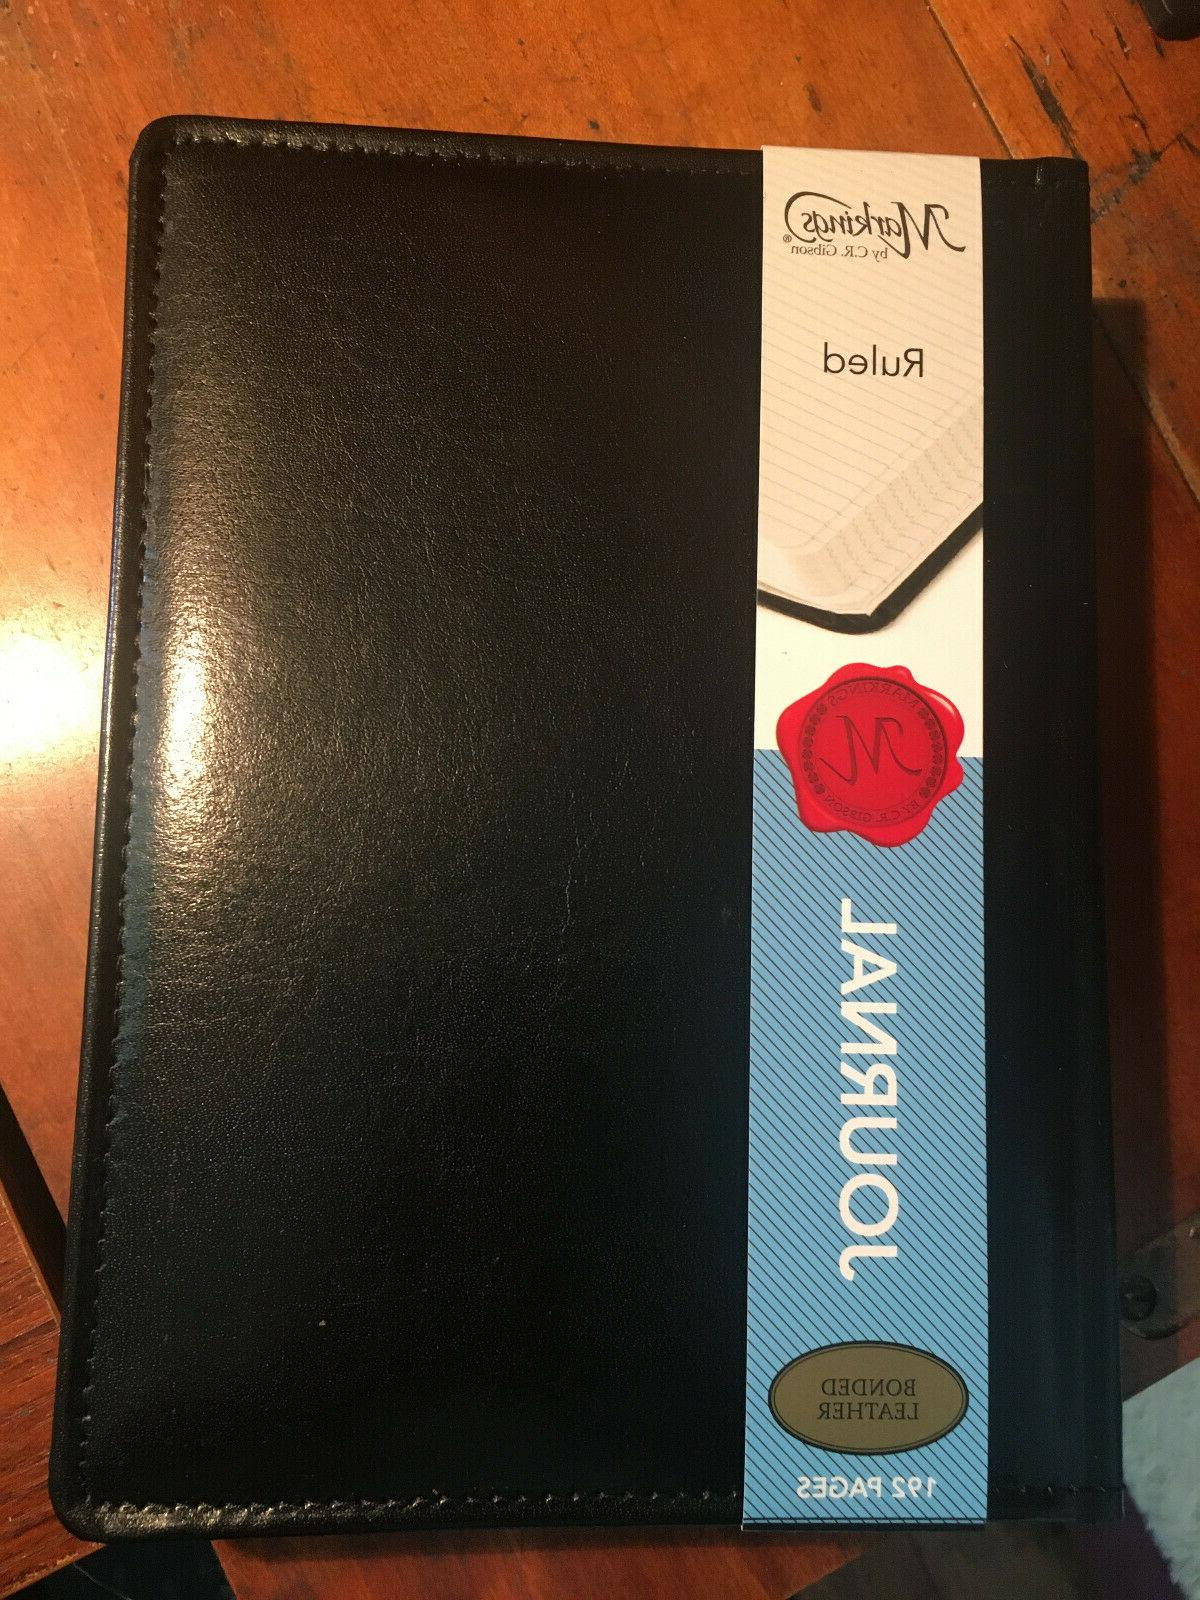 192 pg Bonded Leather Journal 9x6.5 Markings CR GIBSON Ruled